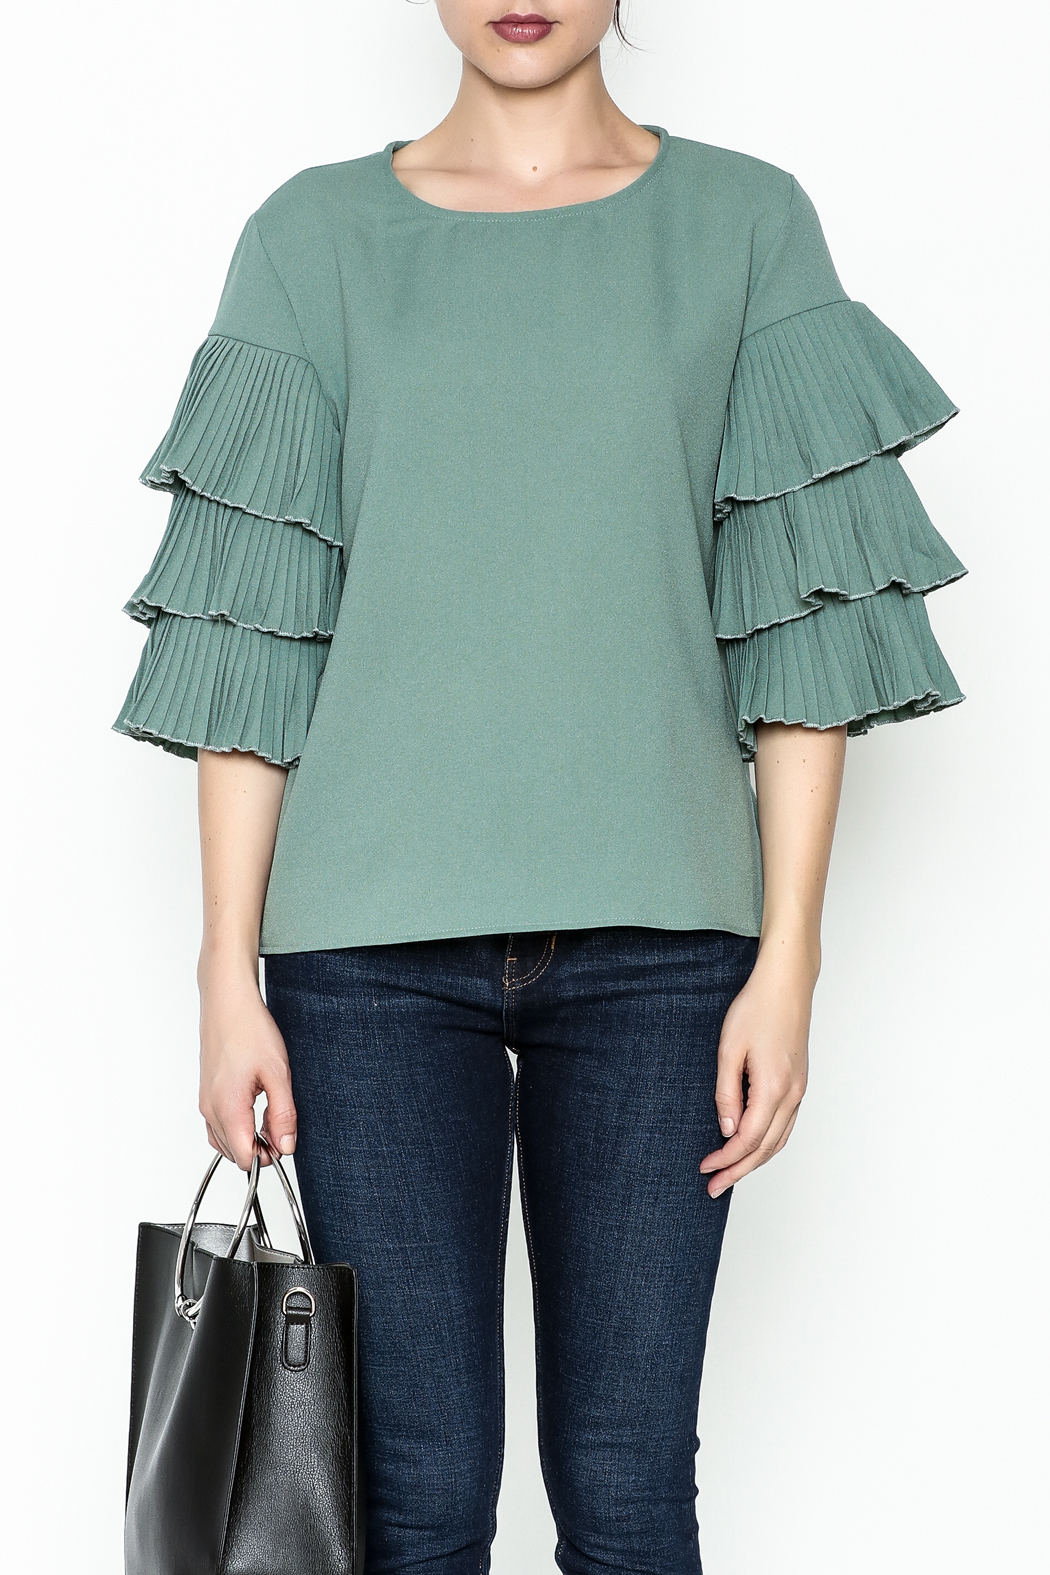 on12th Ruffle Sleeve Blouse - Front Full Image